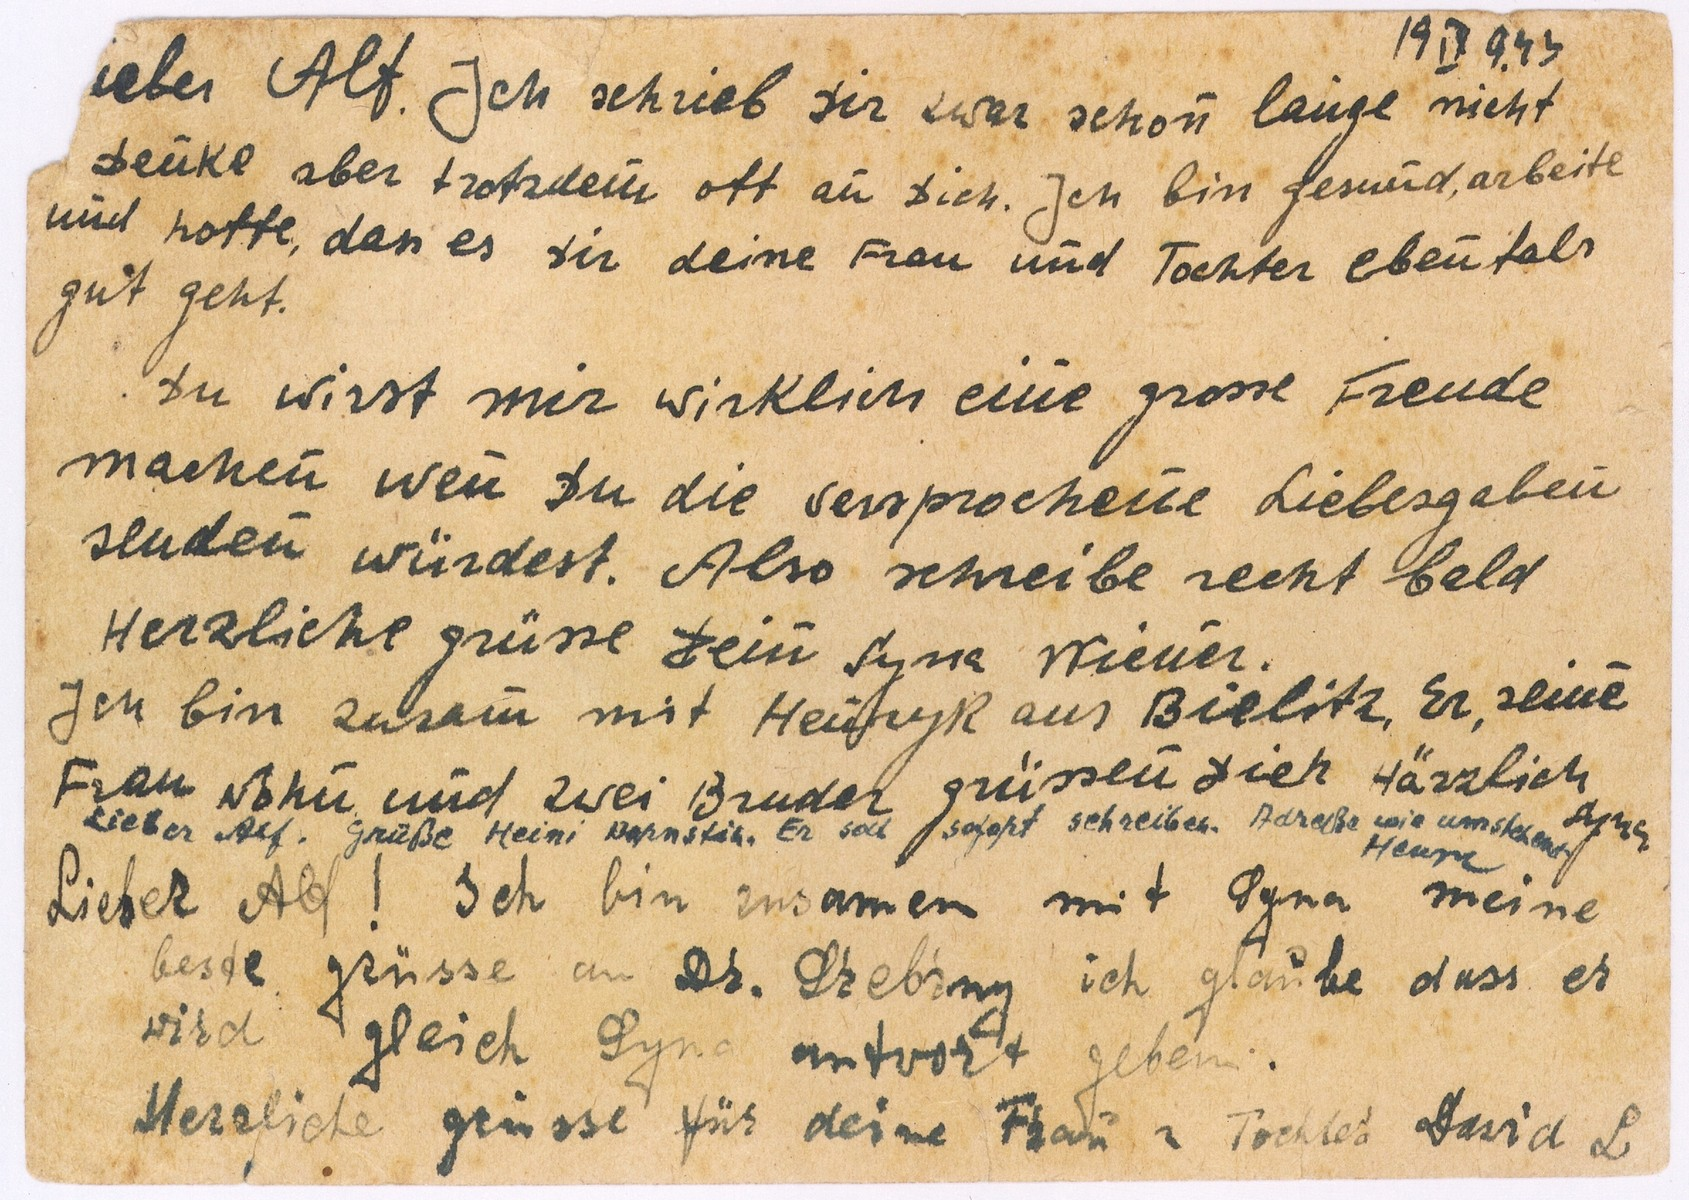 A postcard sent from the Bedzin ghetto in Kamionka by C. Wiener to Alfred Schwartzbaum in Lausanne, Switzerland.  The postcard was sent on September 21, 1943.  The encoded message, written by three people, urges  Alfred Schwarzbaum to send them foreign visas as soon as possible.